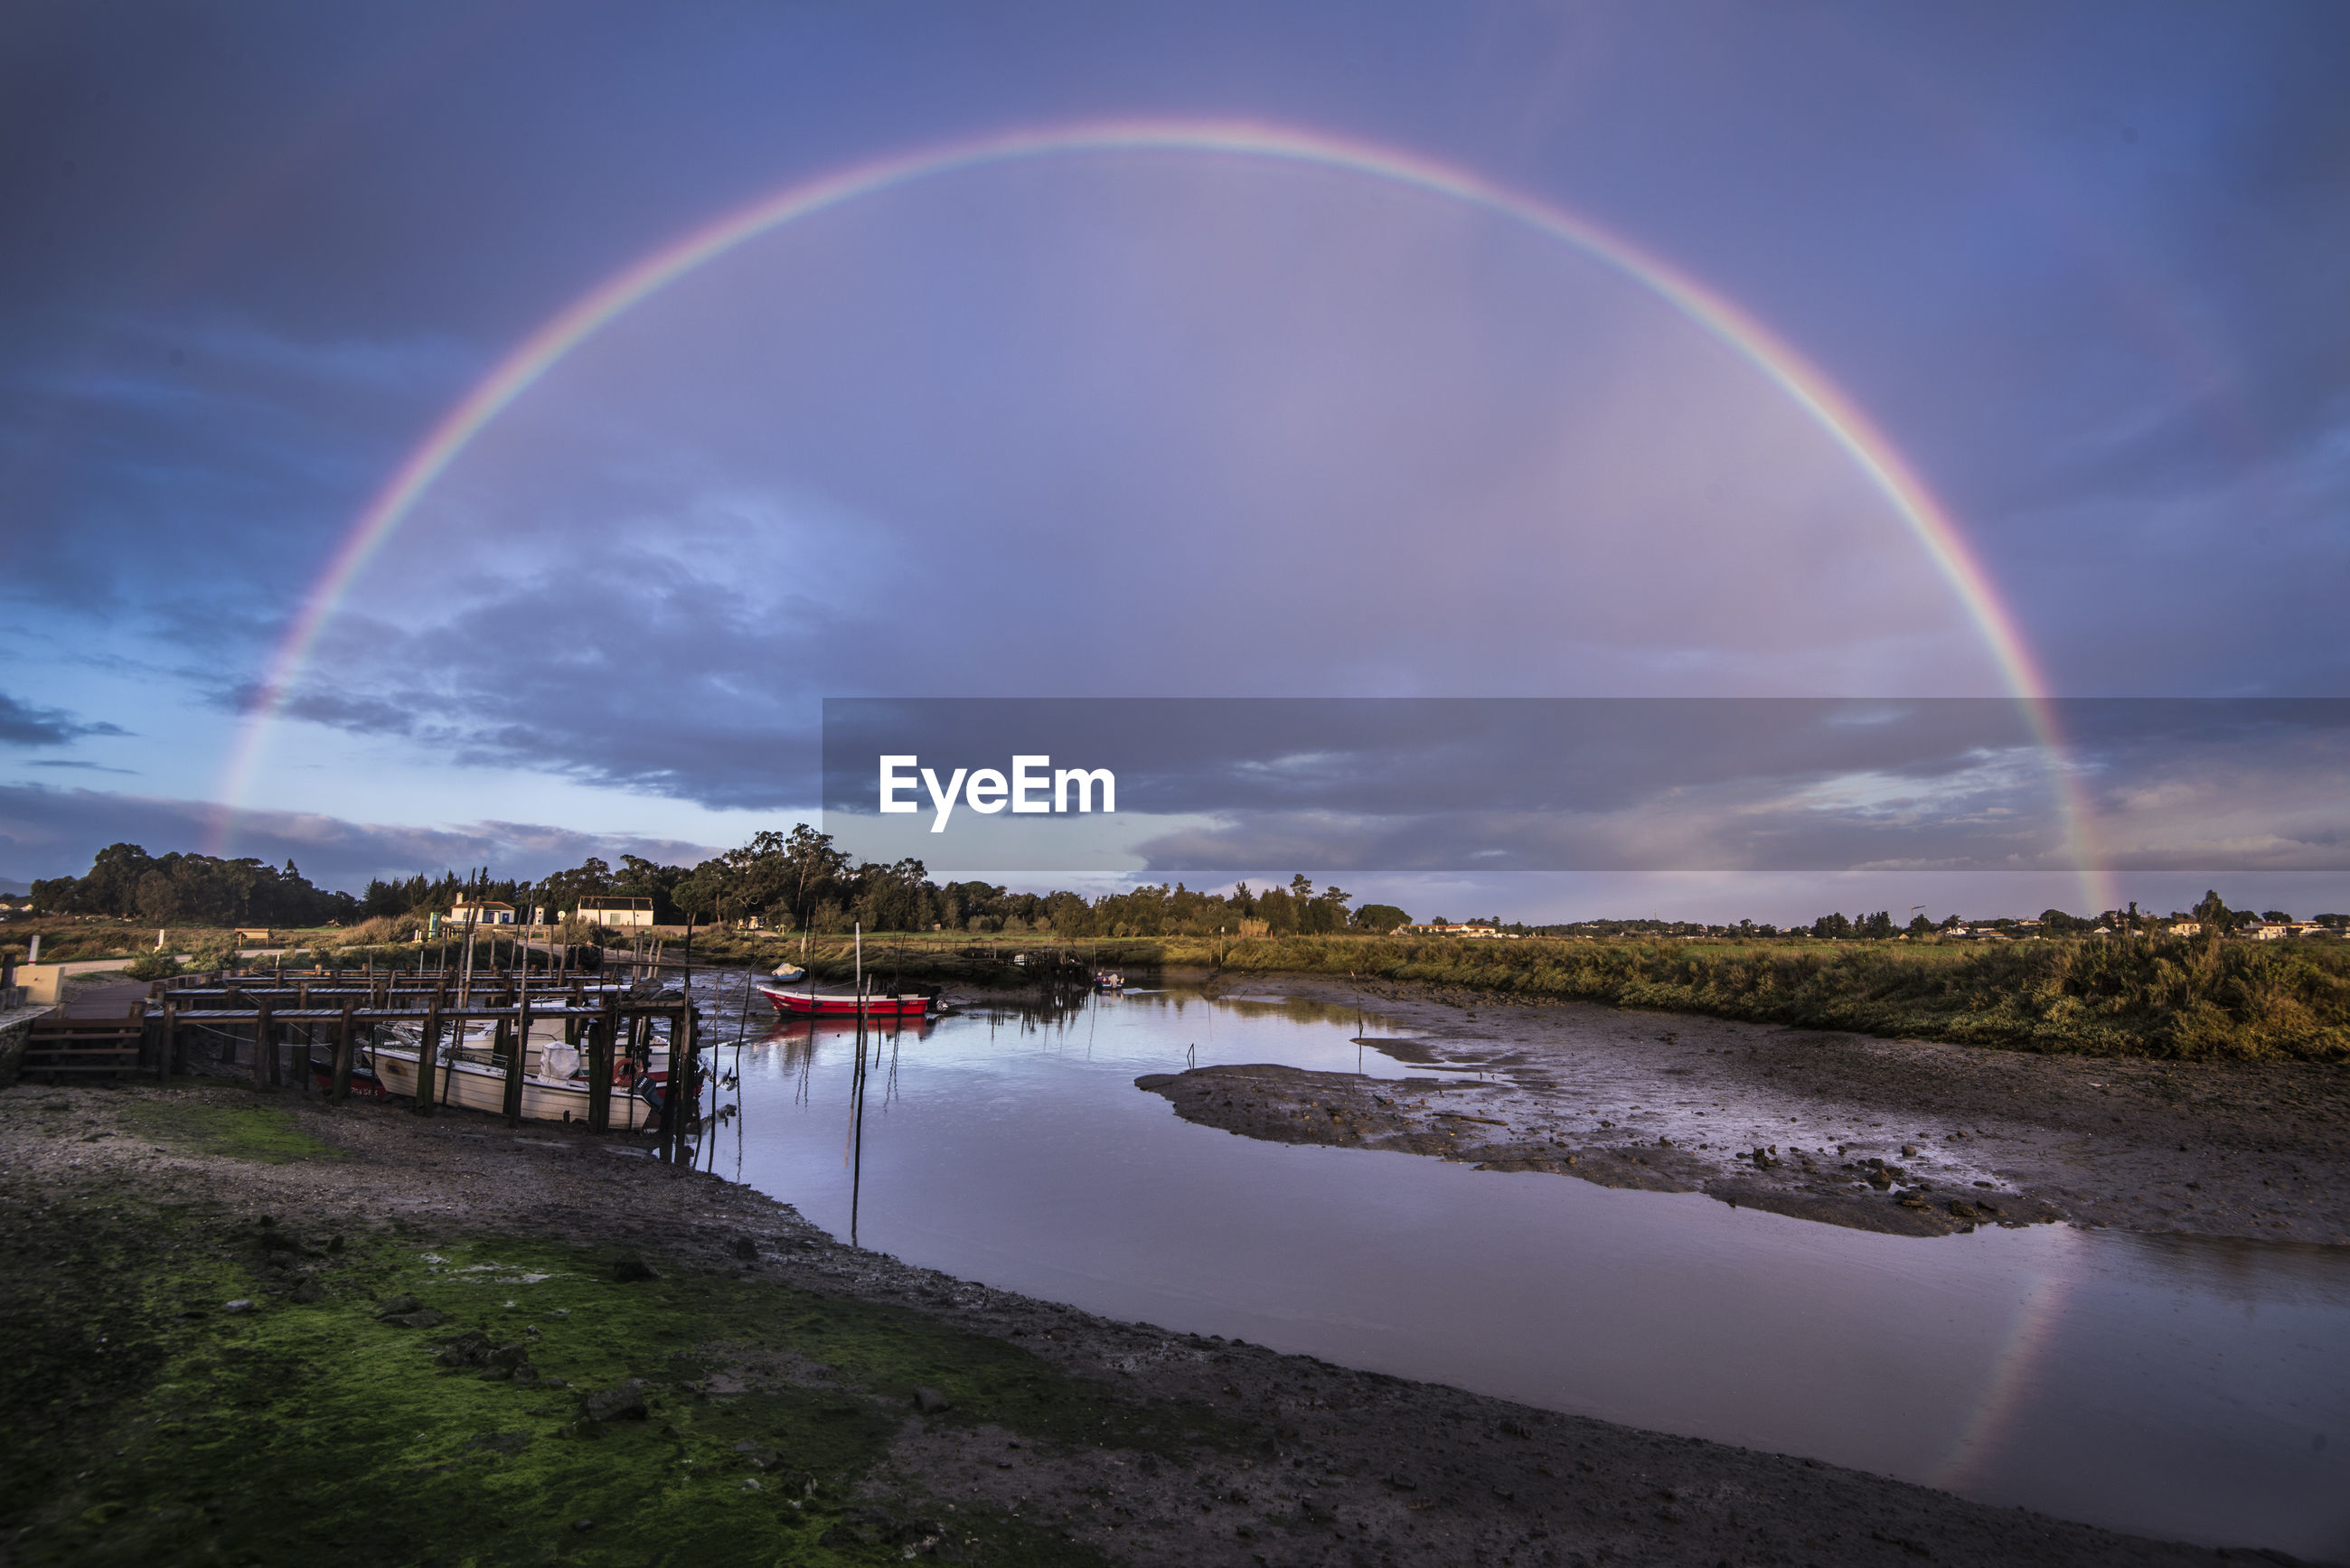 Scenic view of rainbow over river against cloudy sky